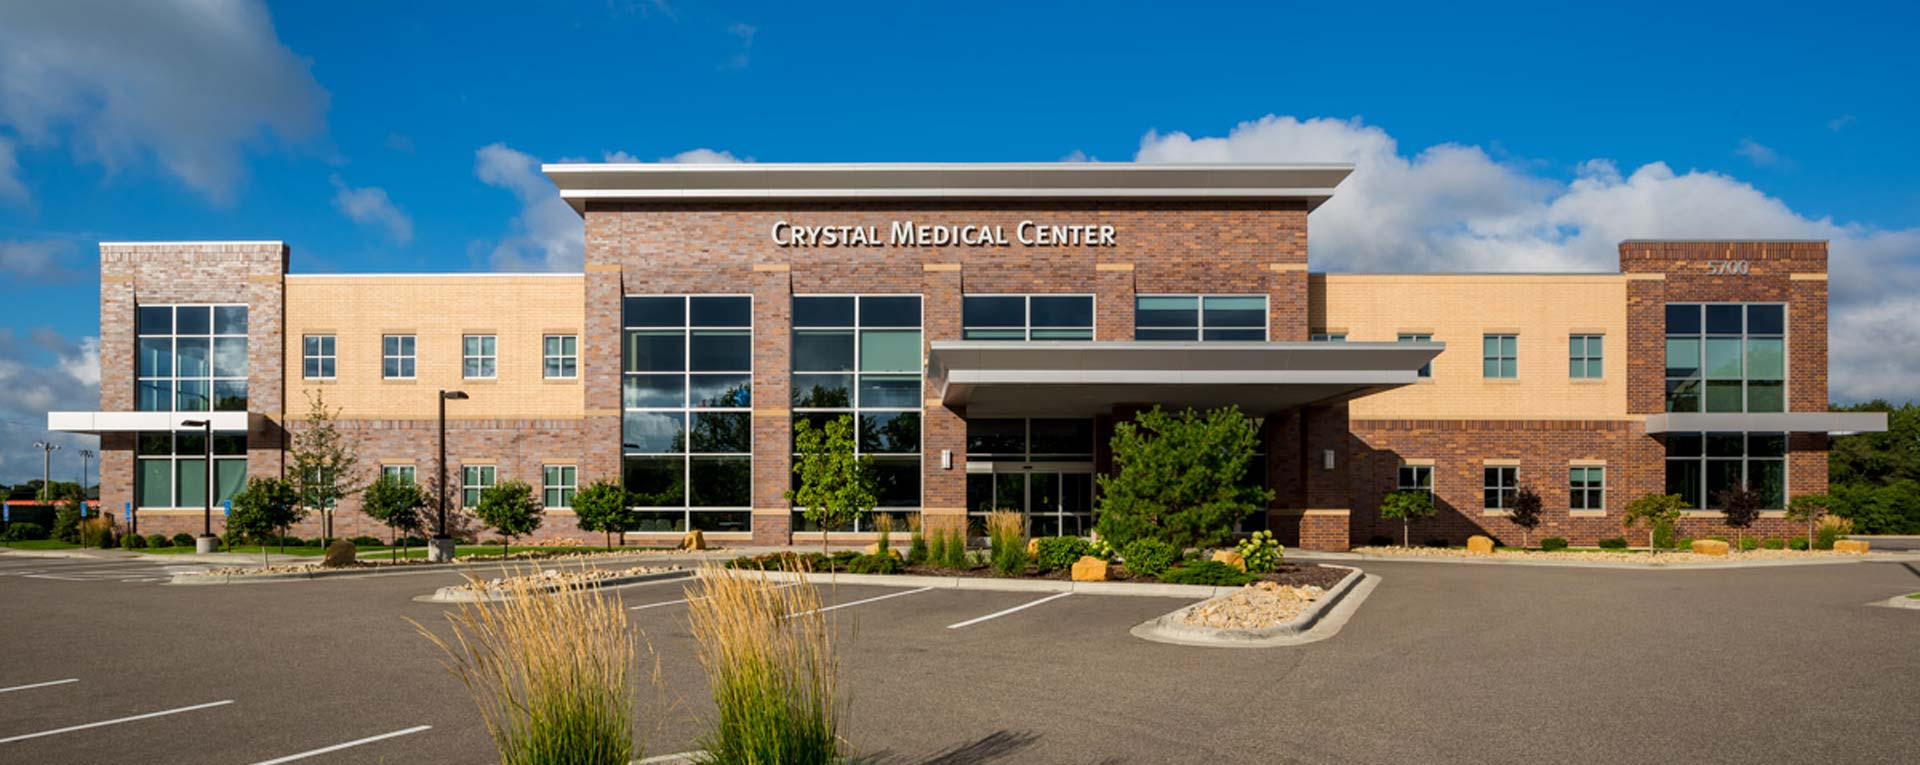 Crystal Medical Center - Crystal, MN